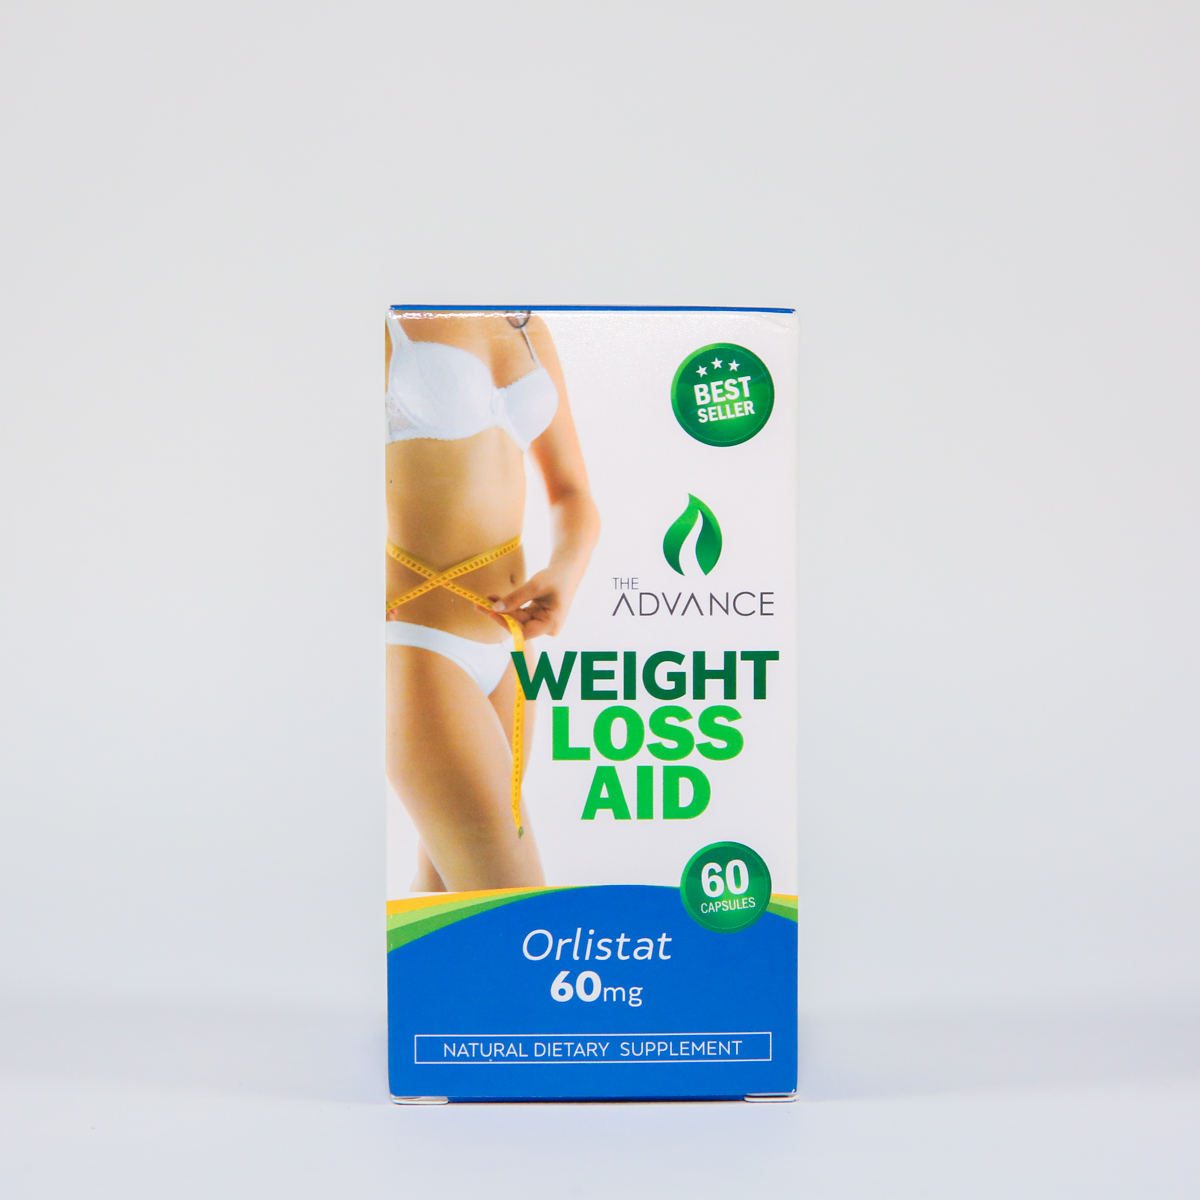 WEIGHT LOSS AID